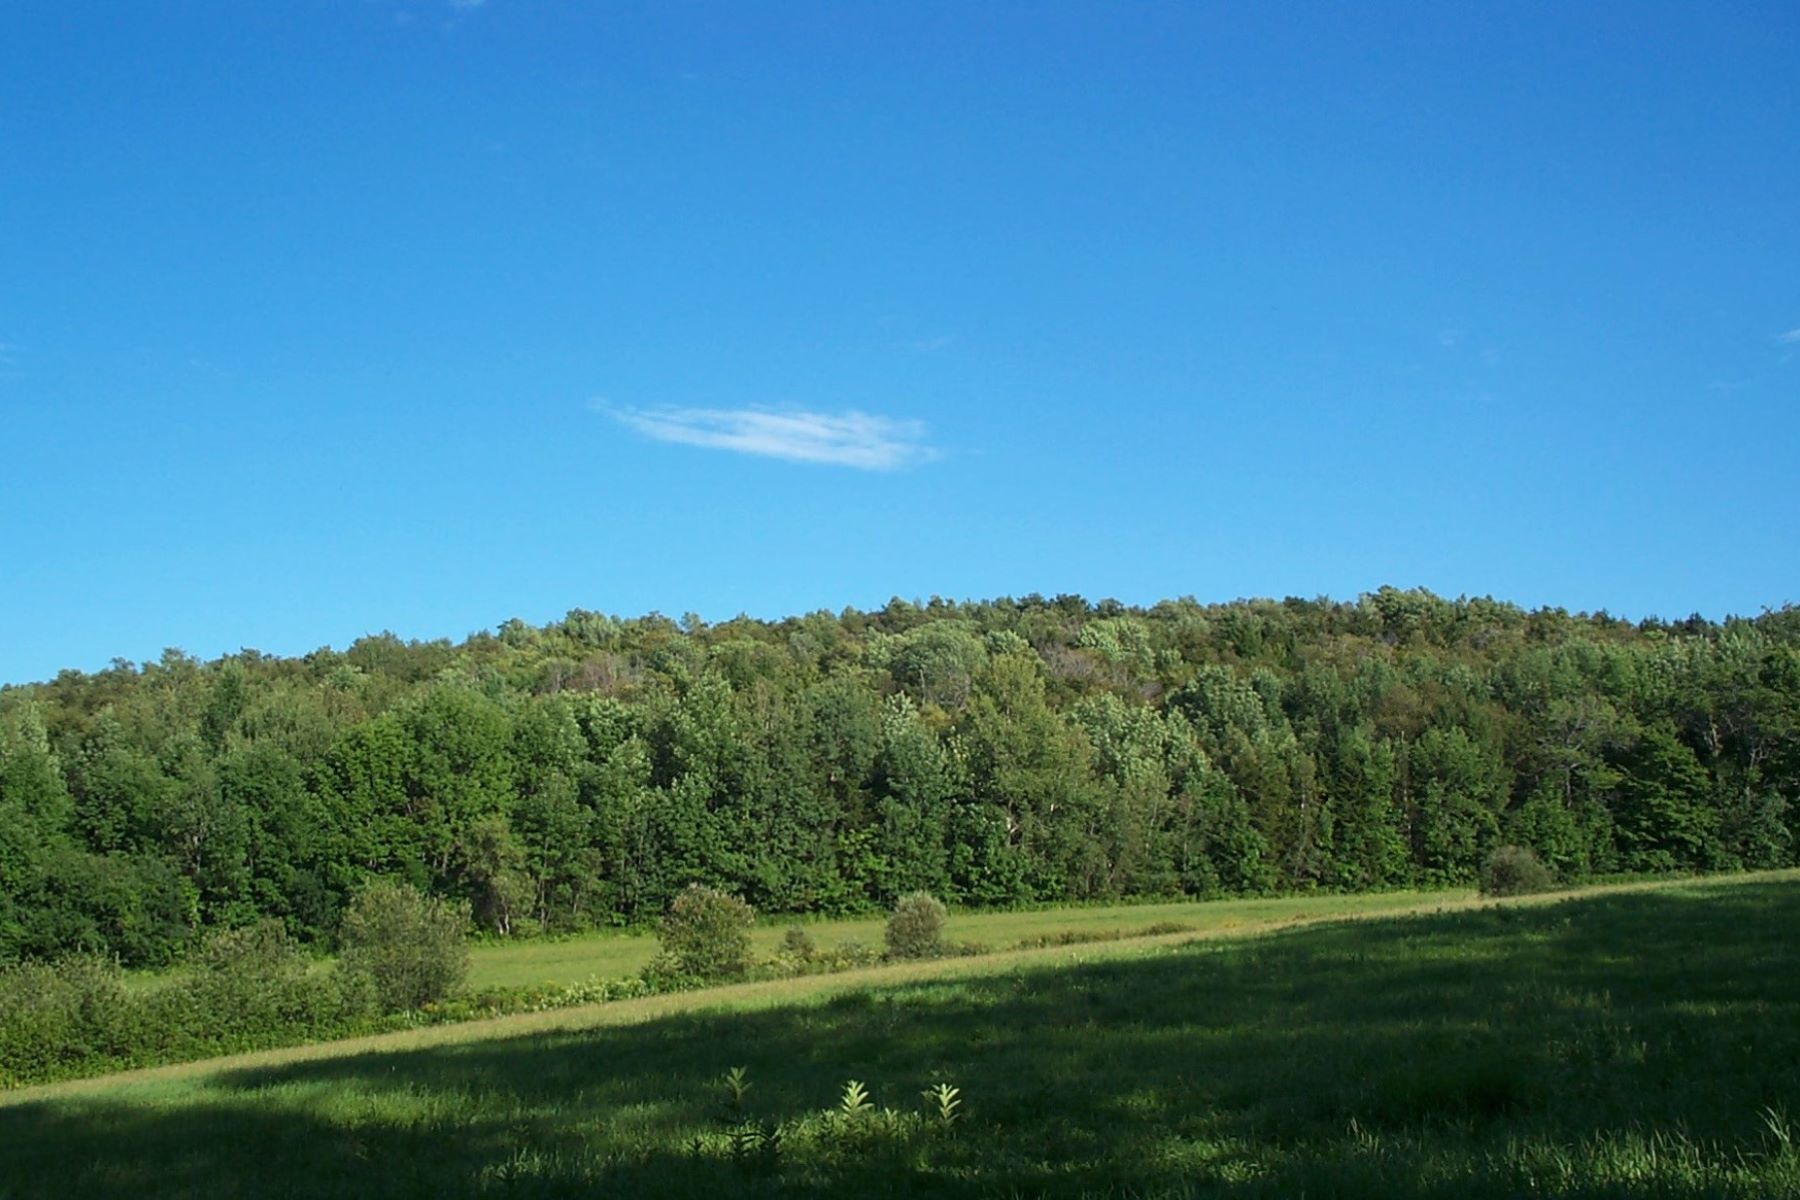 Land for Sale at Barnard, Vermont Acreage with Views 00 Sayer Rd, Barnard, Vermont, 05031 United States